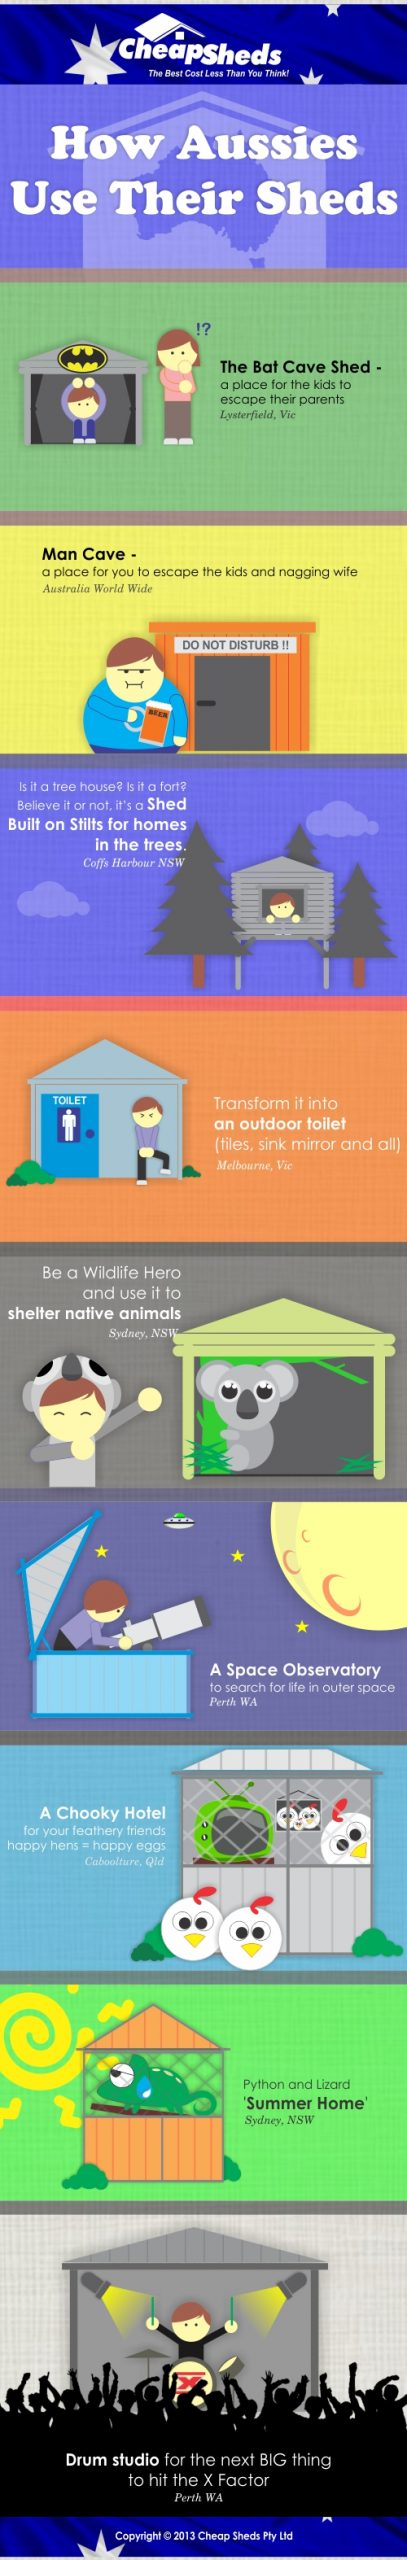 aussie sheds - infographic